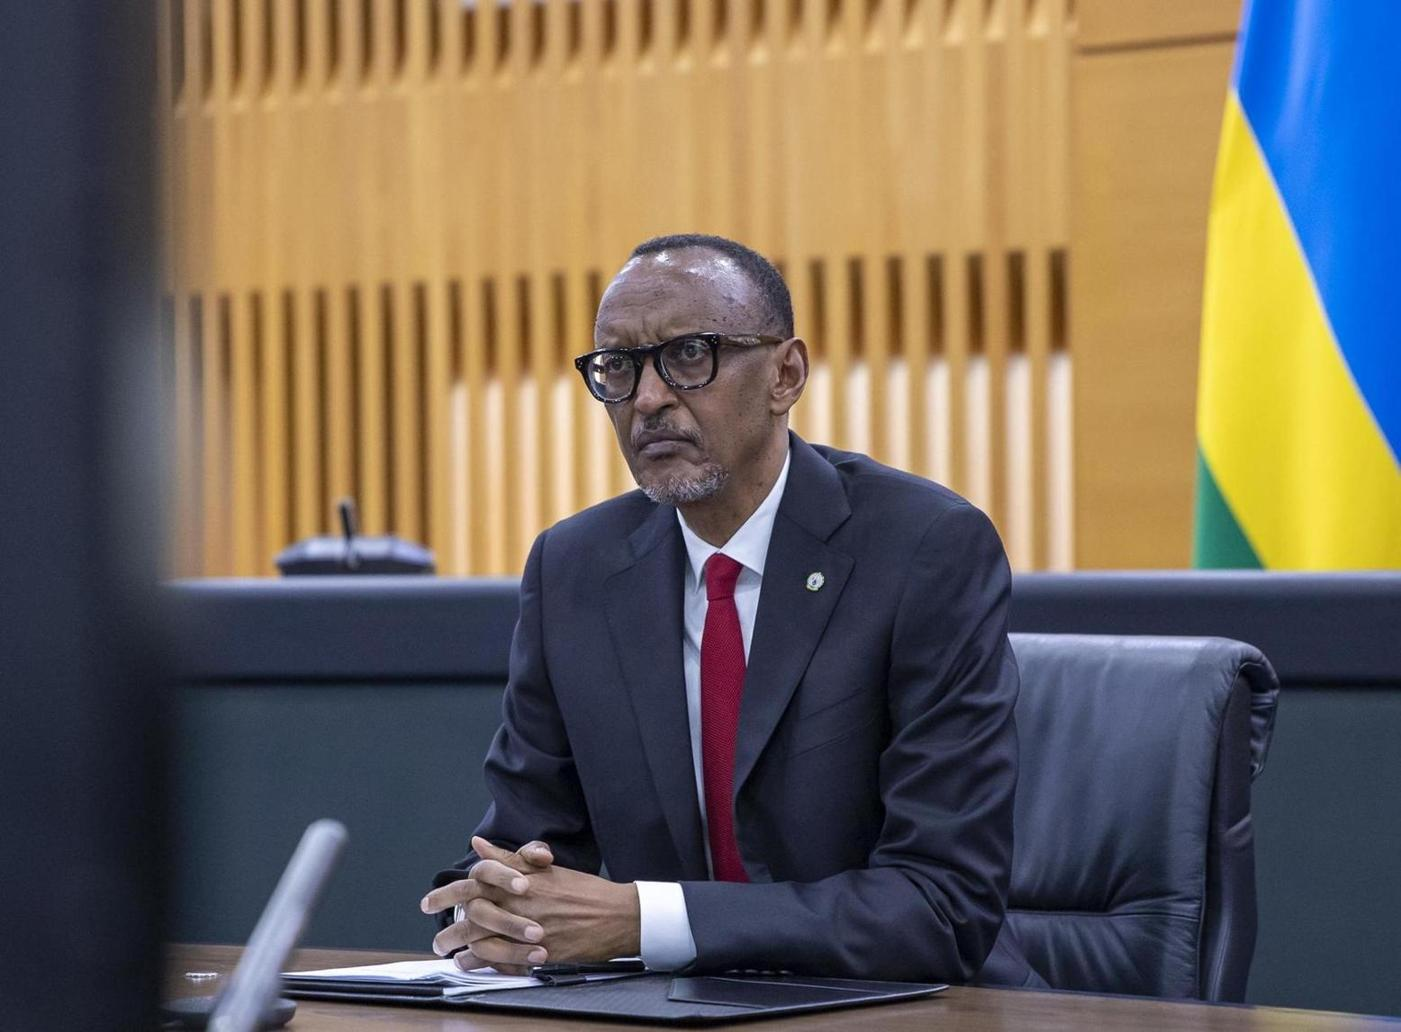 Kagame: We have a responsibility to maximise the assets that Africa has